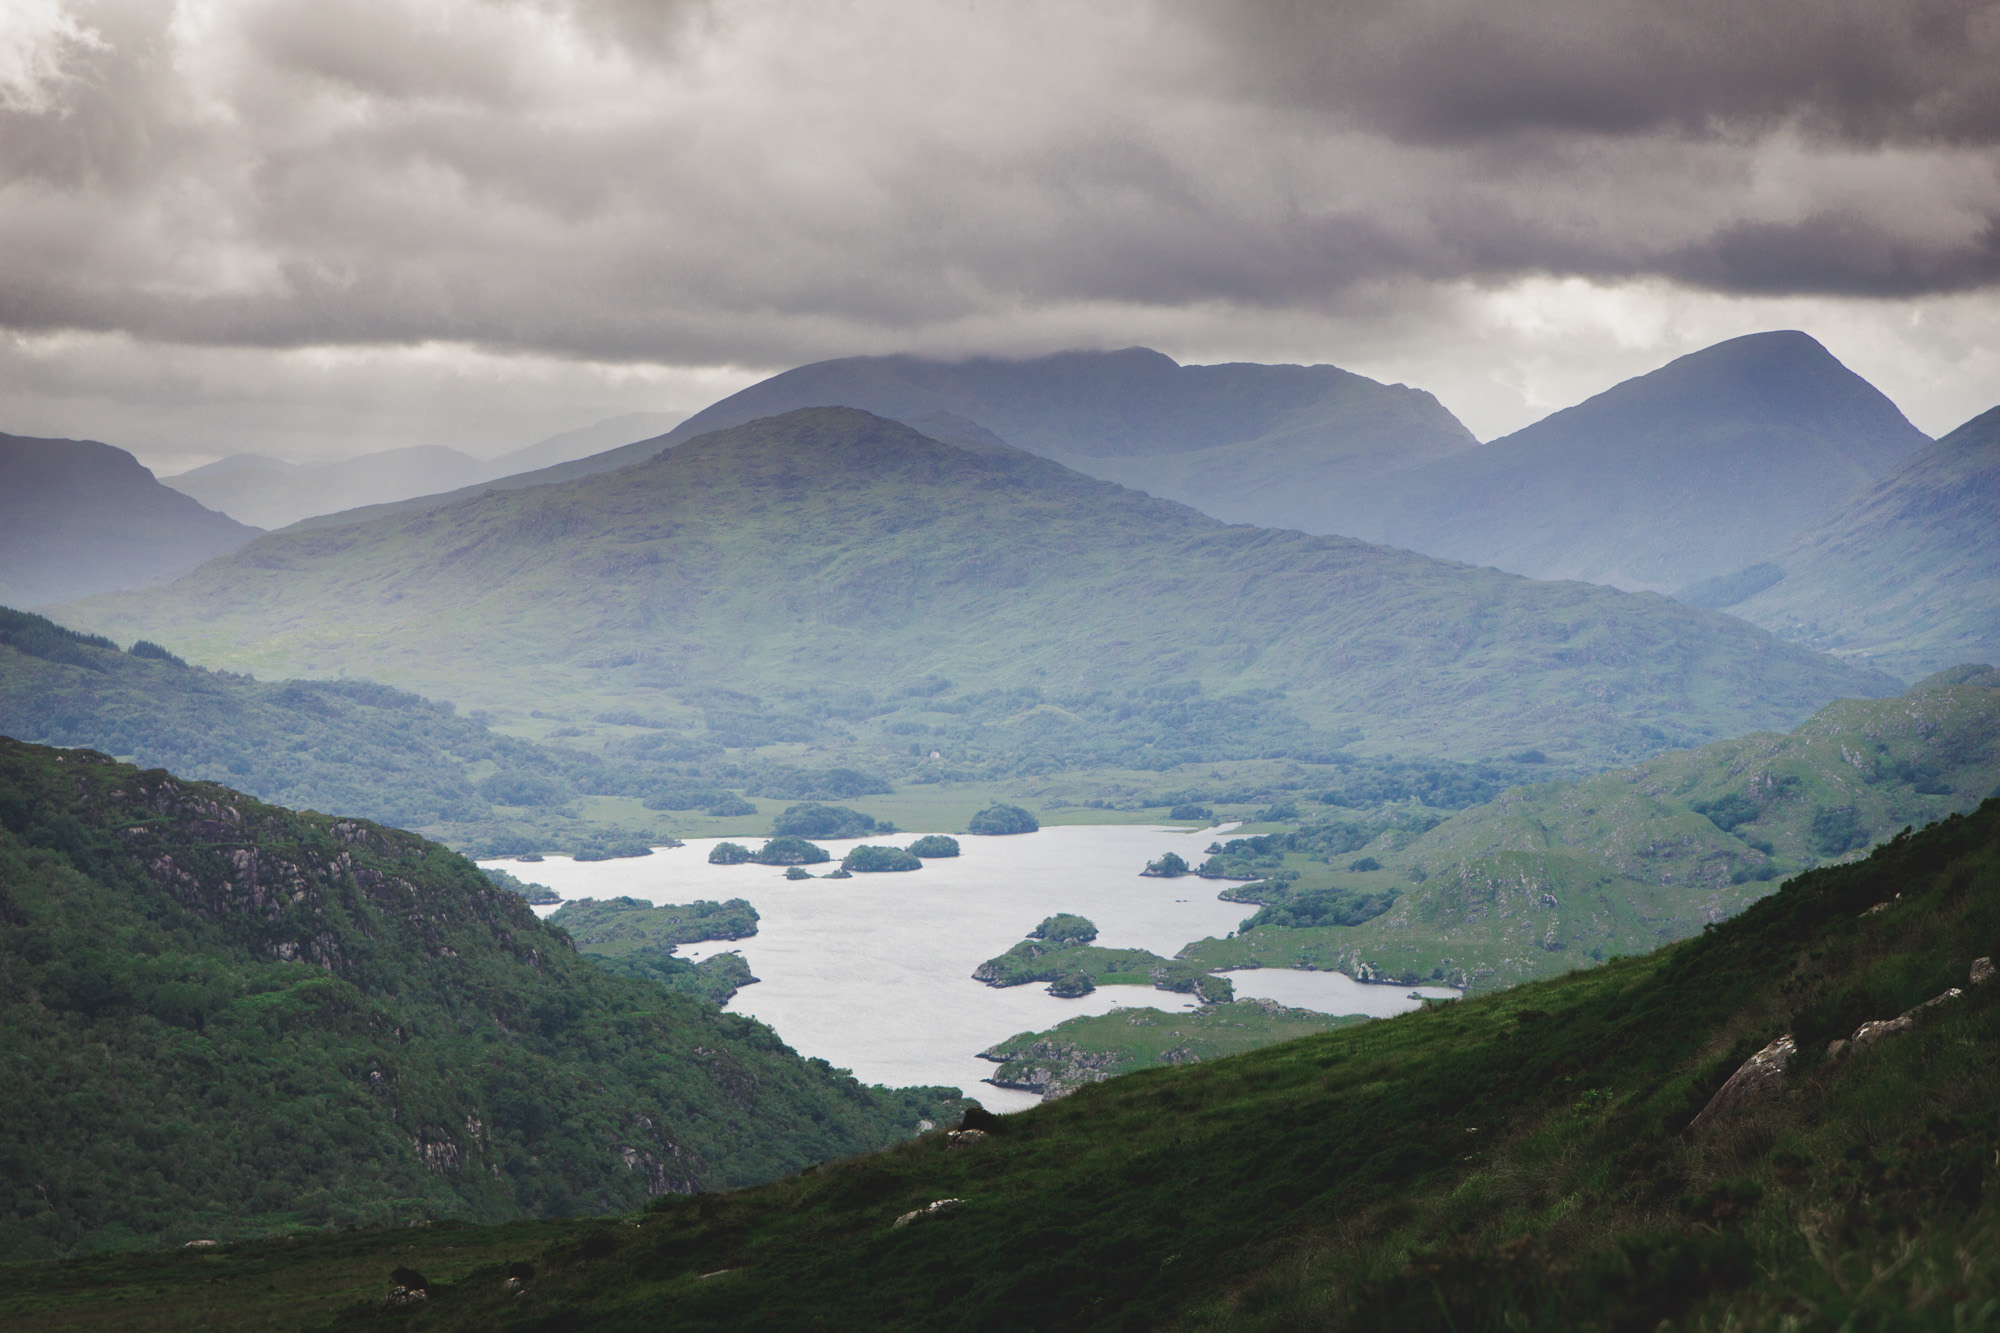 Rainy and cloudy view from the top of Torc Mountain in Killarney National Park in Ireland of other mountains and a lake in the distance